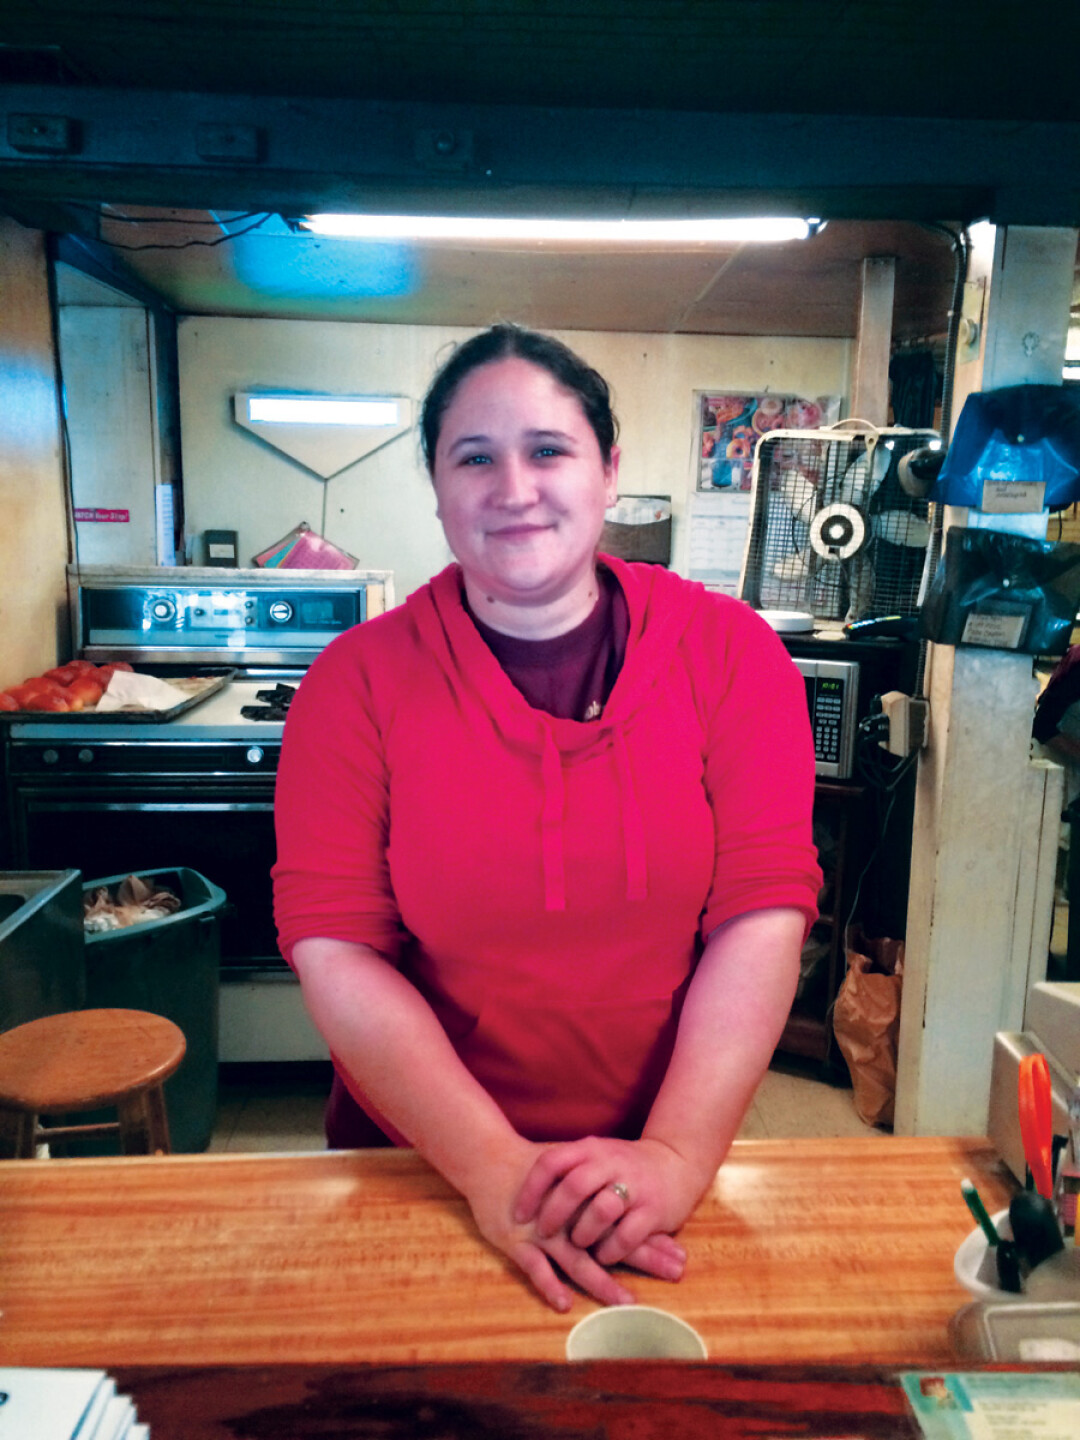 VIVA LA VIE BOHEME. Laura McNamara is the new manager of the Bohemian Ovens, an acclaimed bakery in Bloomer. A longtime employee, McNamara said she will do her best to maintain the traditional atmosphere.